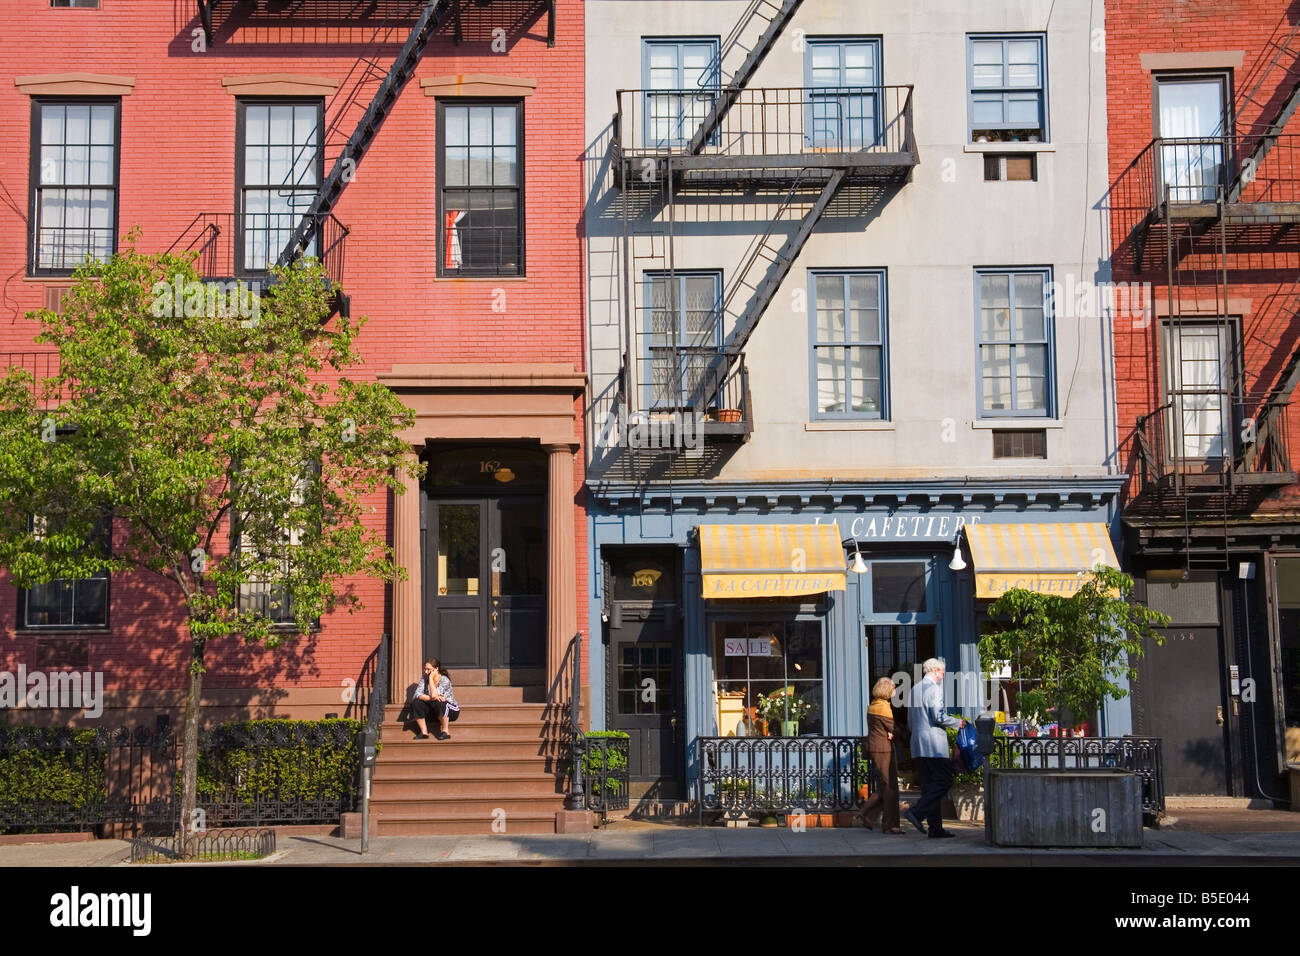 9th Avenue in Chelsea District, Midtown Manhattan, New York City, USA, North America - Stock Image